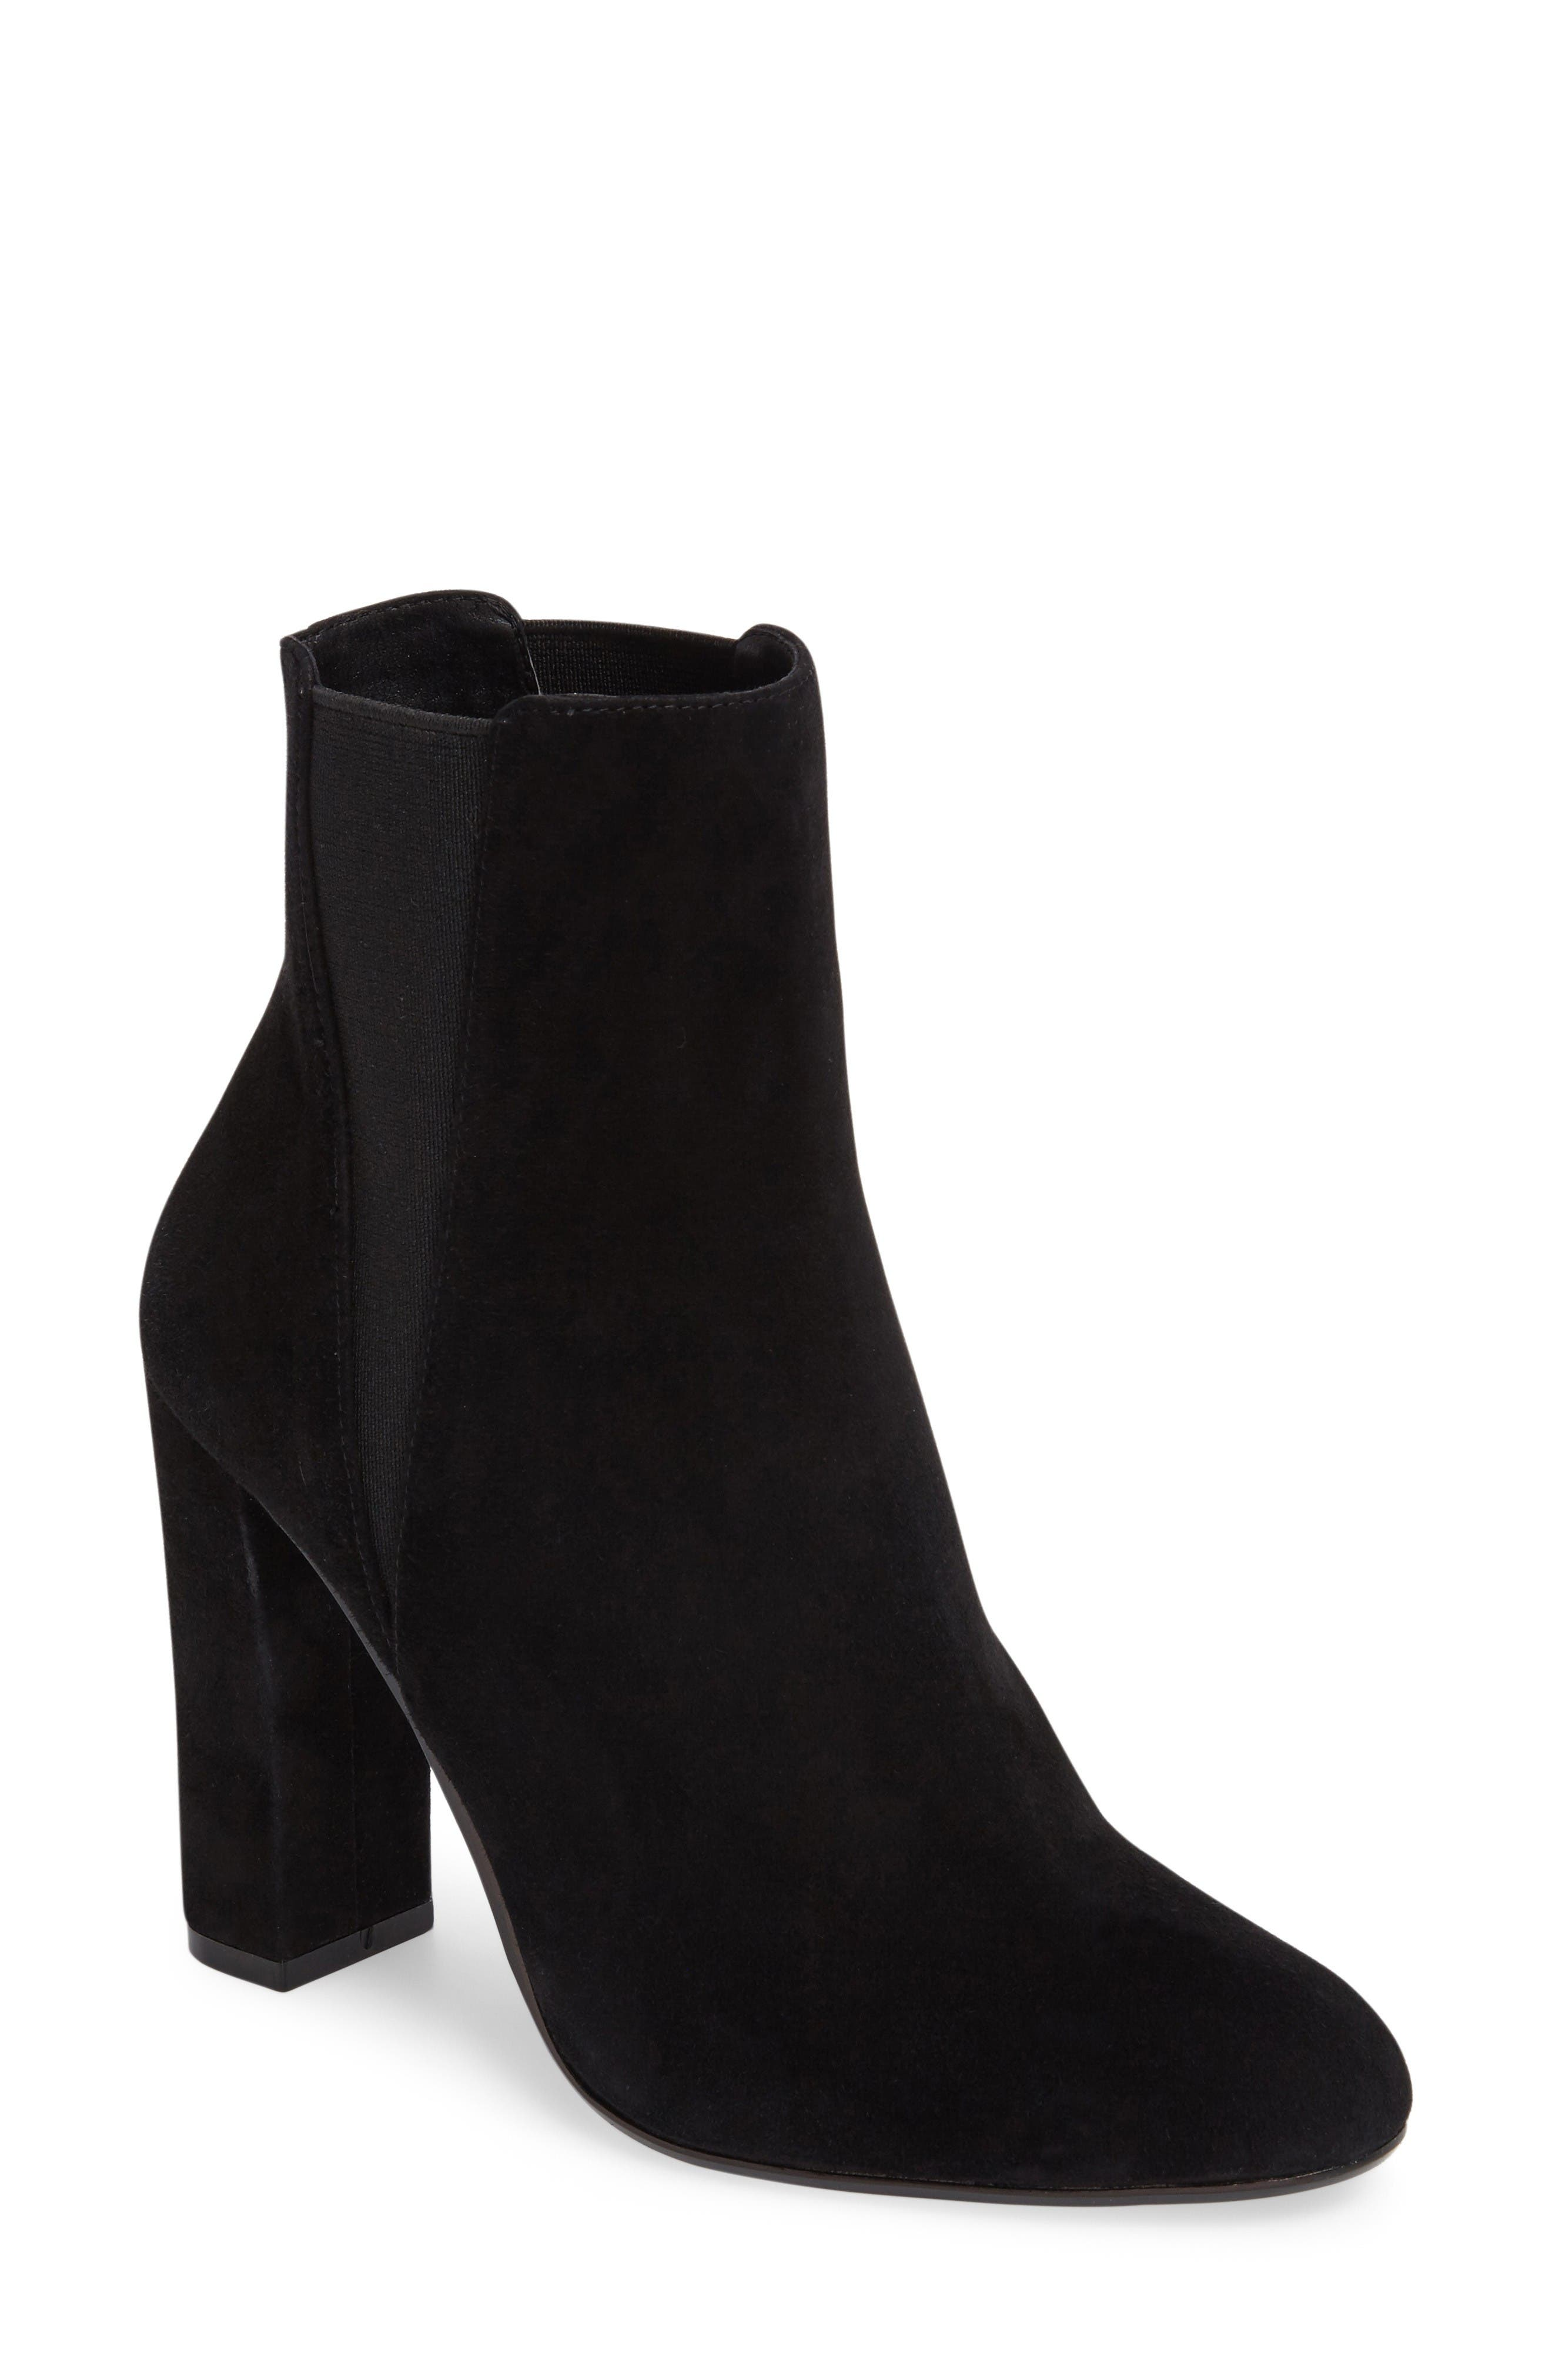 Alternate Image 1 Selected - Steve Madden Effect Block Heel Bootie (Women)